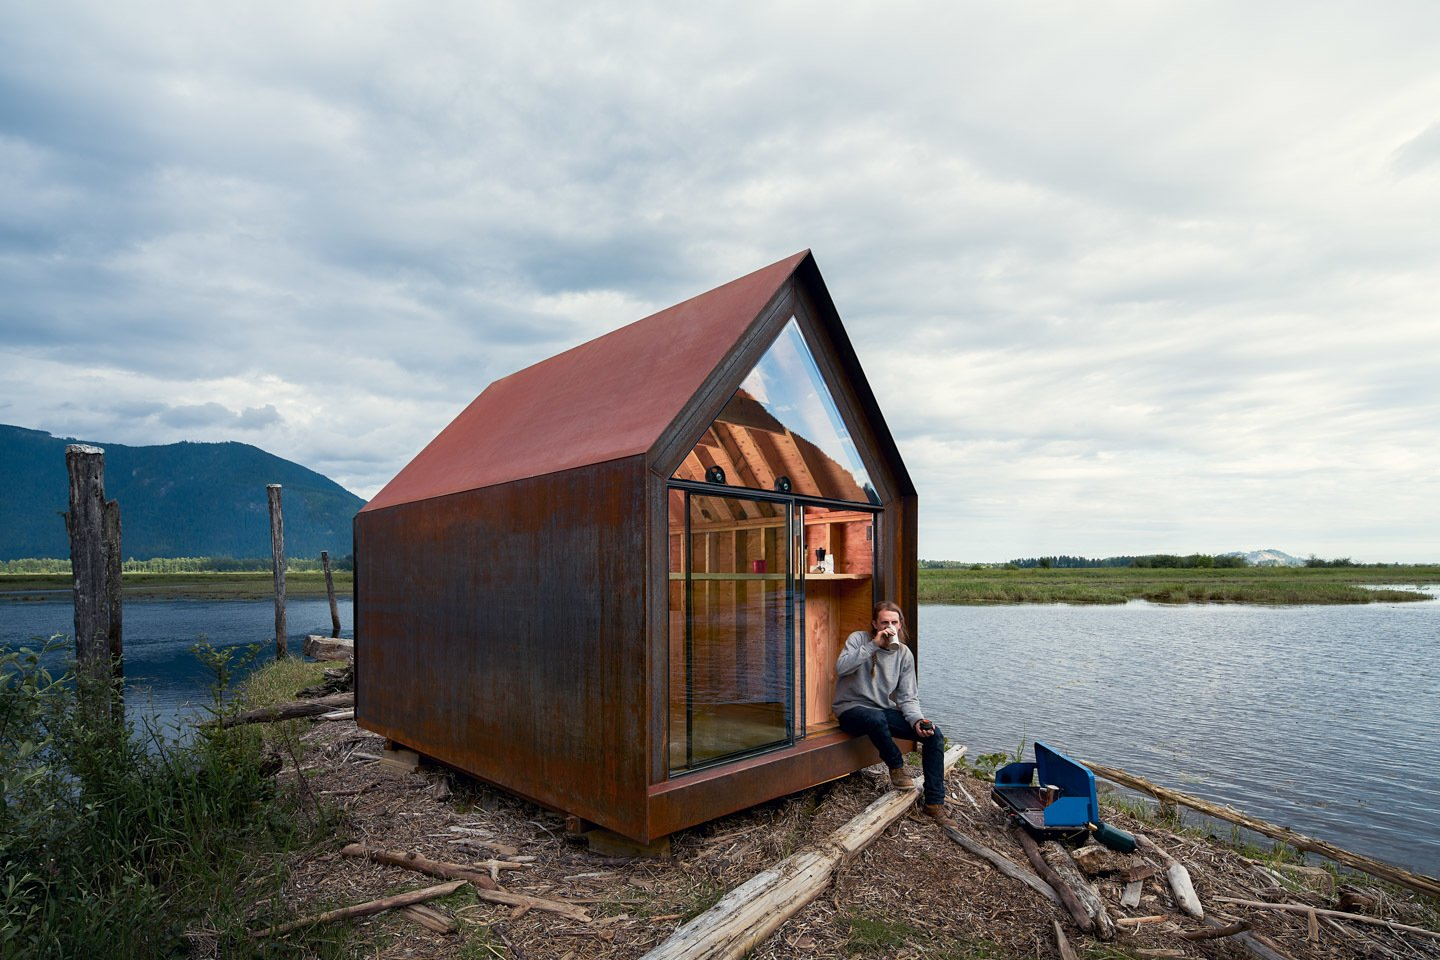 Site Shack prefab cabin in natural setting